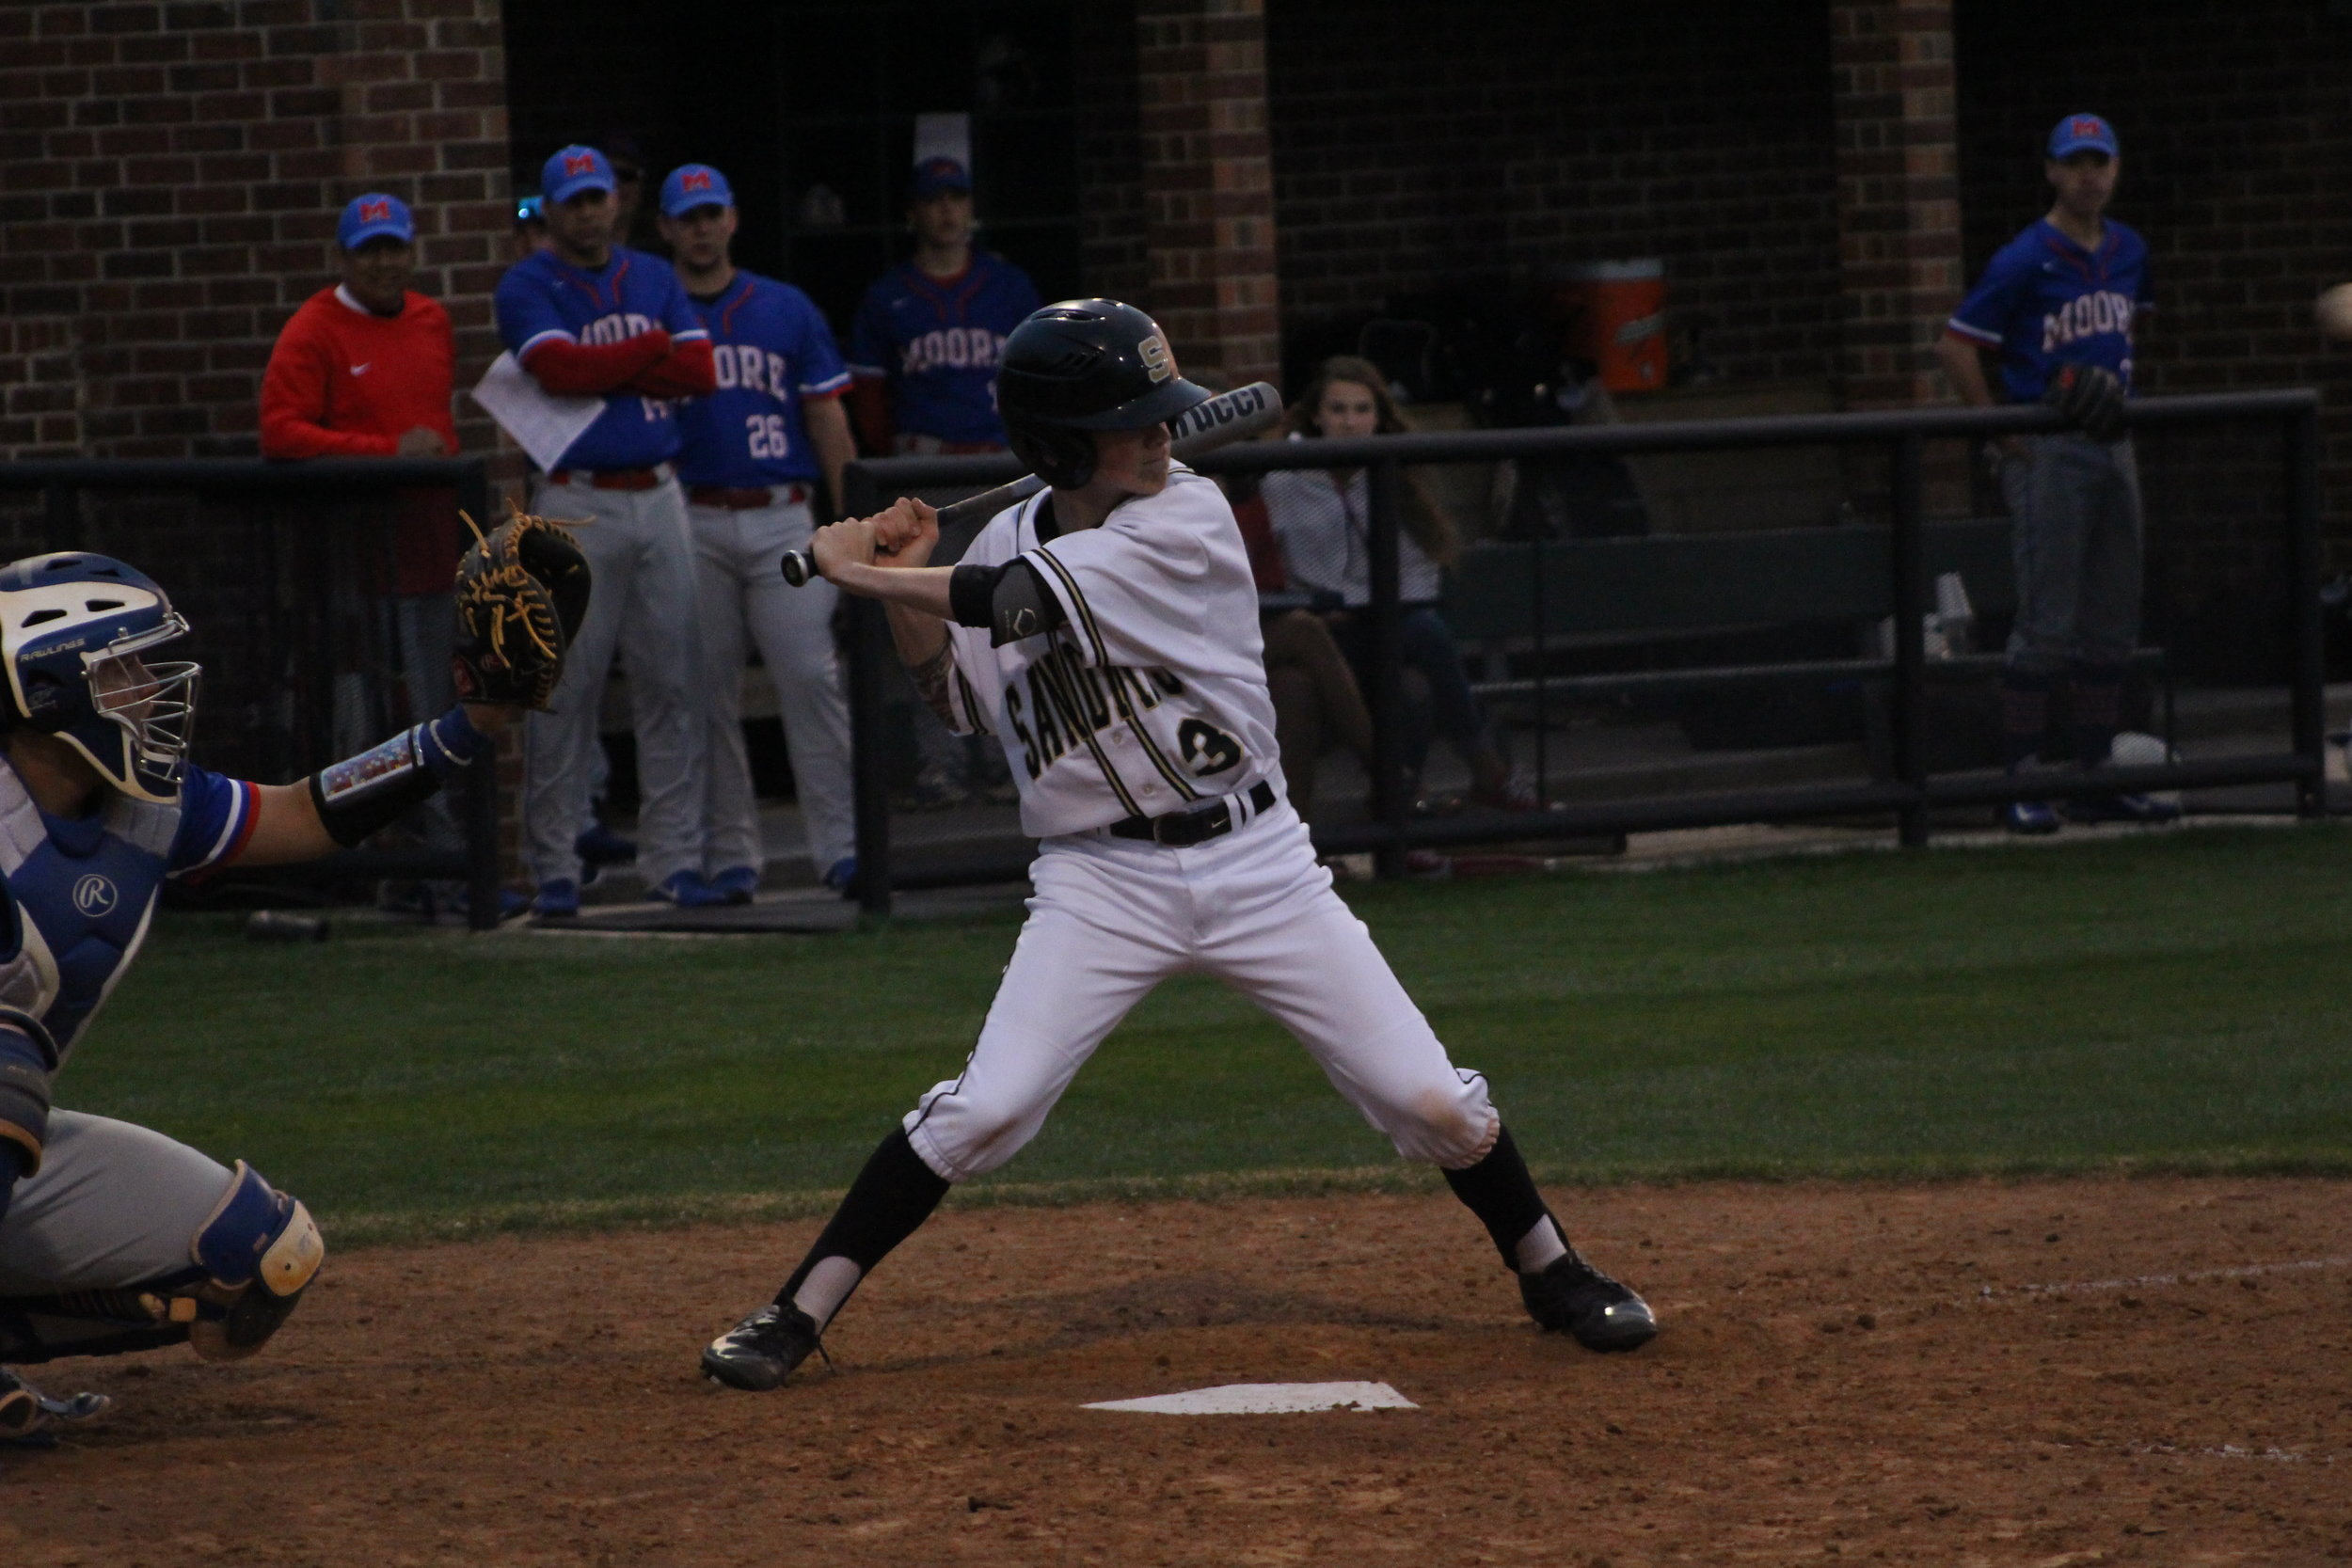 Ty Steelman scored two runs and one RBI in the 7-5 loss to Coweta. (Photo: Scott Emigh).